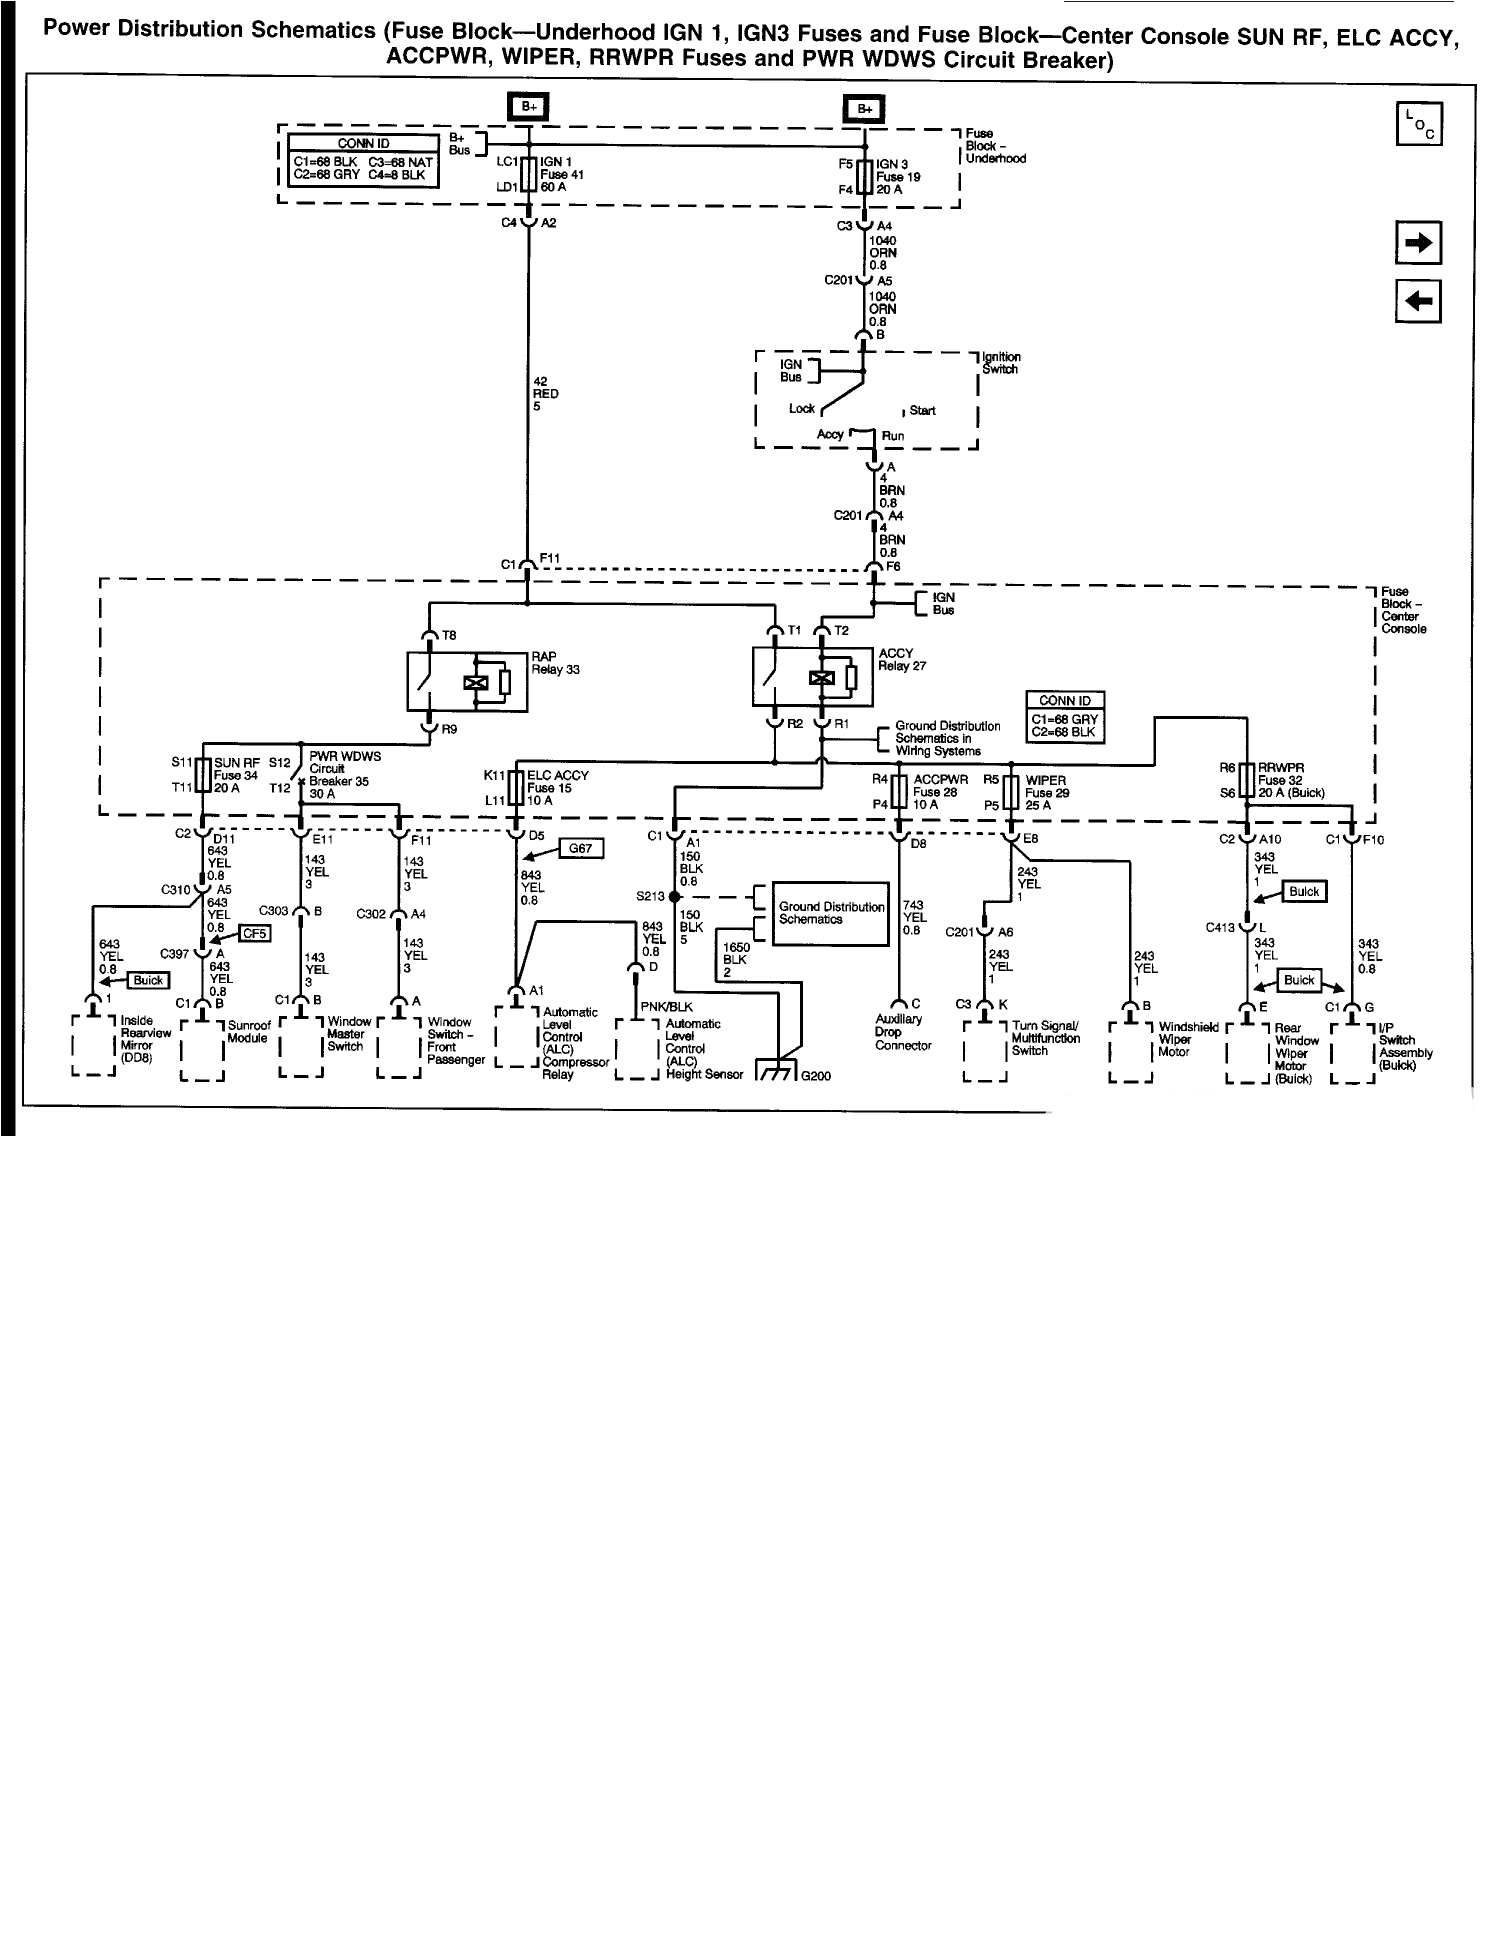 i need a ignition switch wiering diagram for a 2002 buick rendezvous02 buick rendezvous wiring diagram